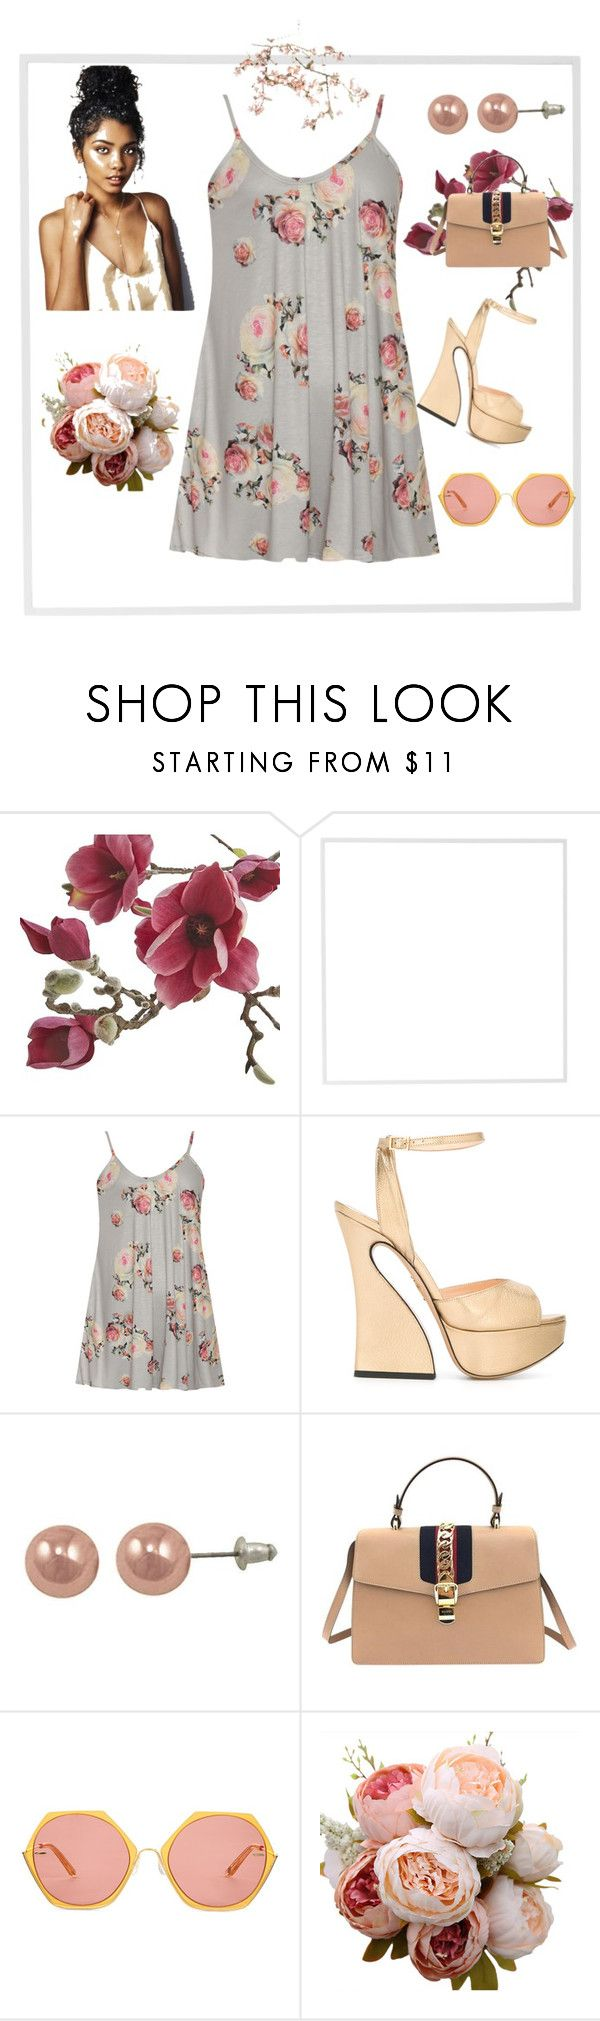 """""""Fresh Summer Style"""" by gigi-sessions on Polyvore featuring Crate and Barrel, Menu, WearAll, Charlotte Olympia, Gucci and Canopy Designs"""